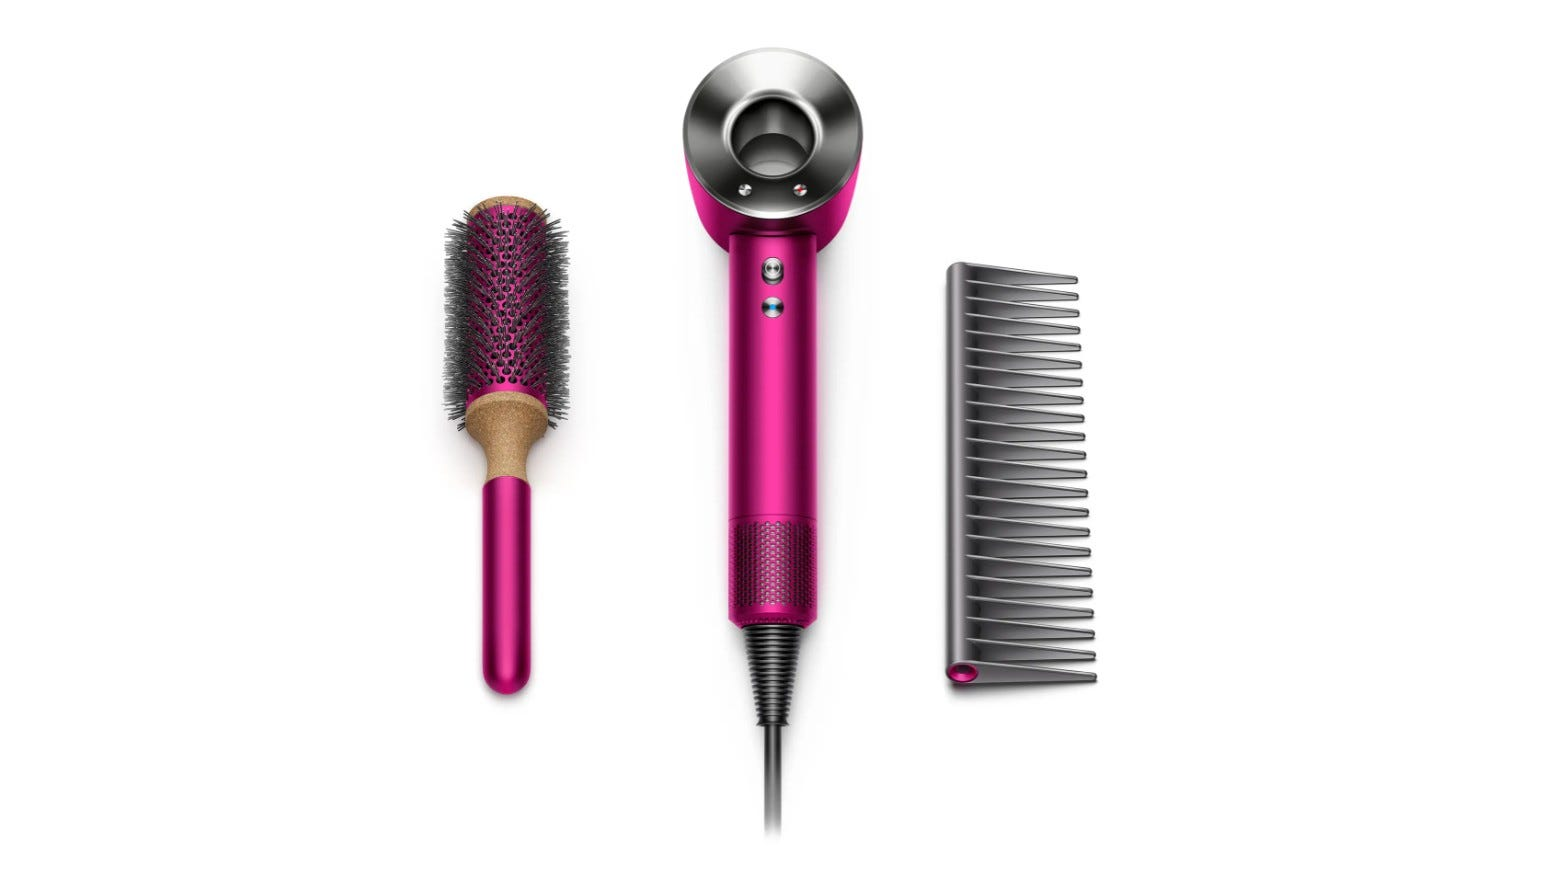 The Dyson Supersonic Hair Dryer Fuchsia Gift Edition.